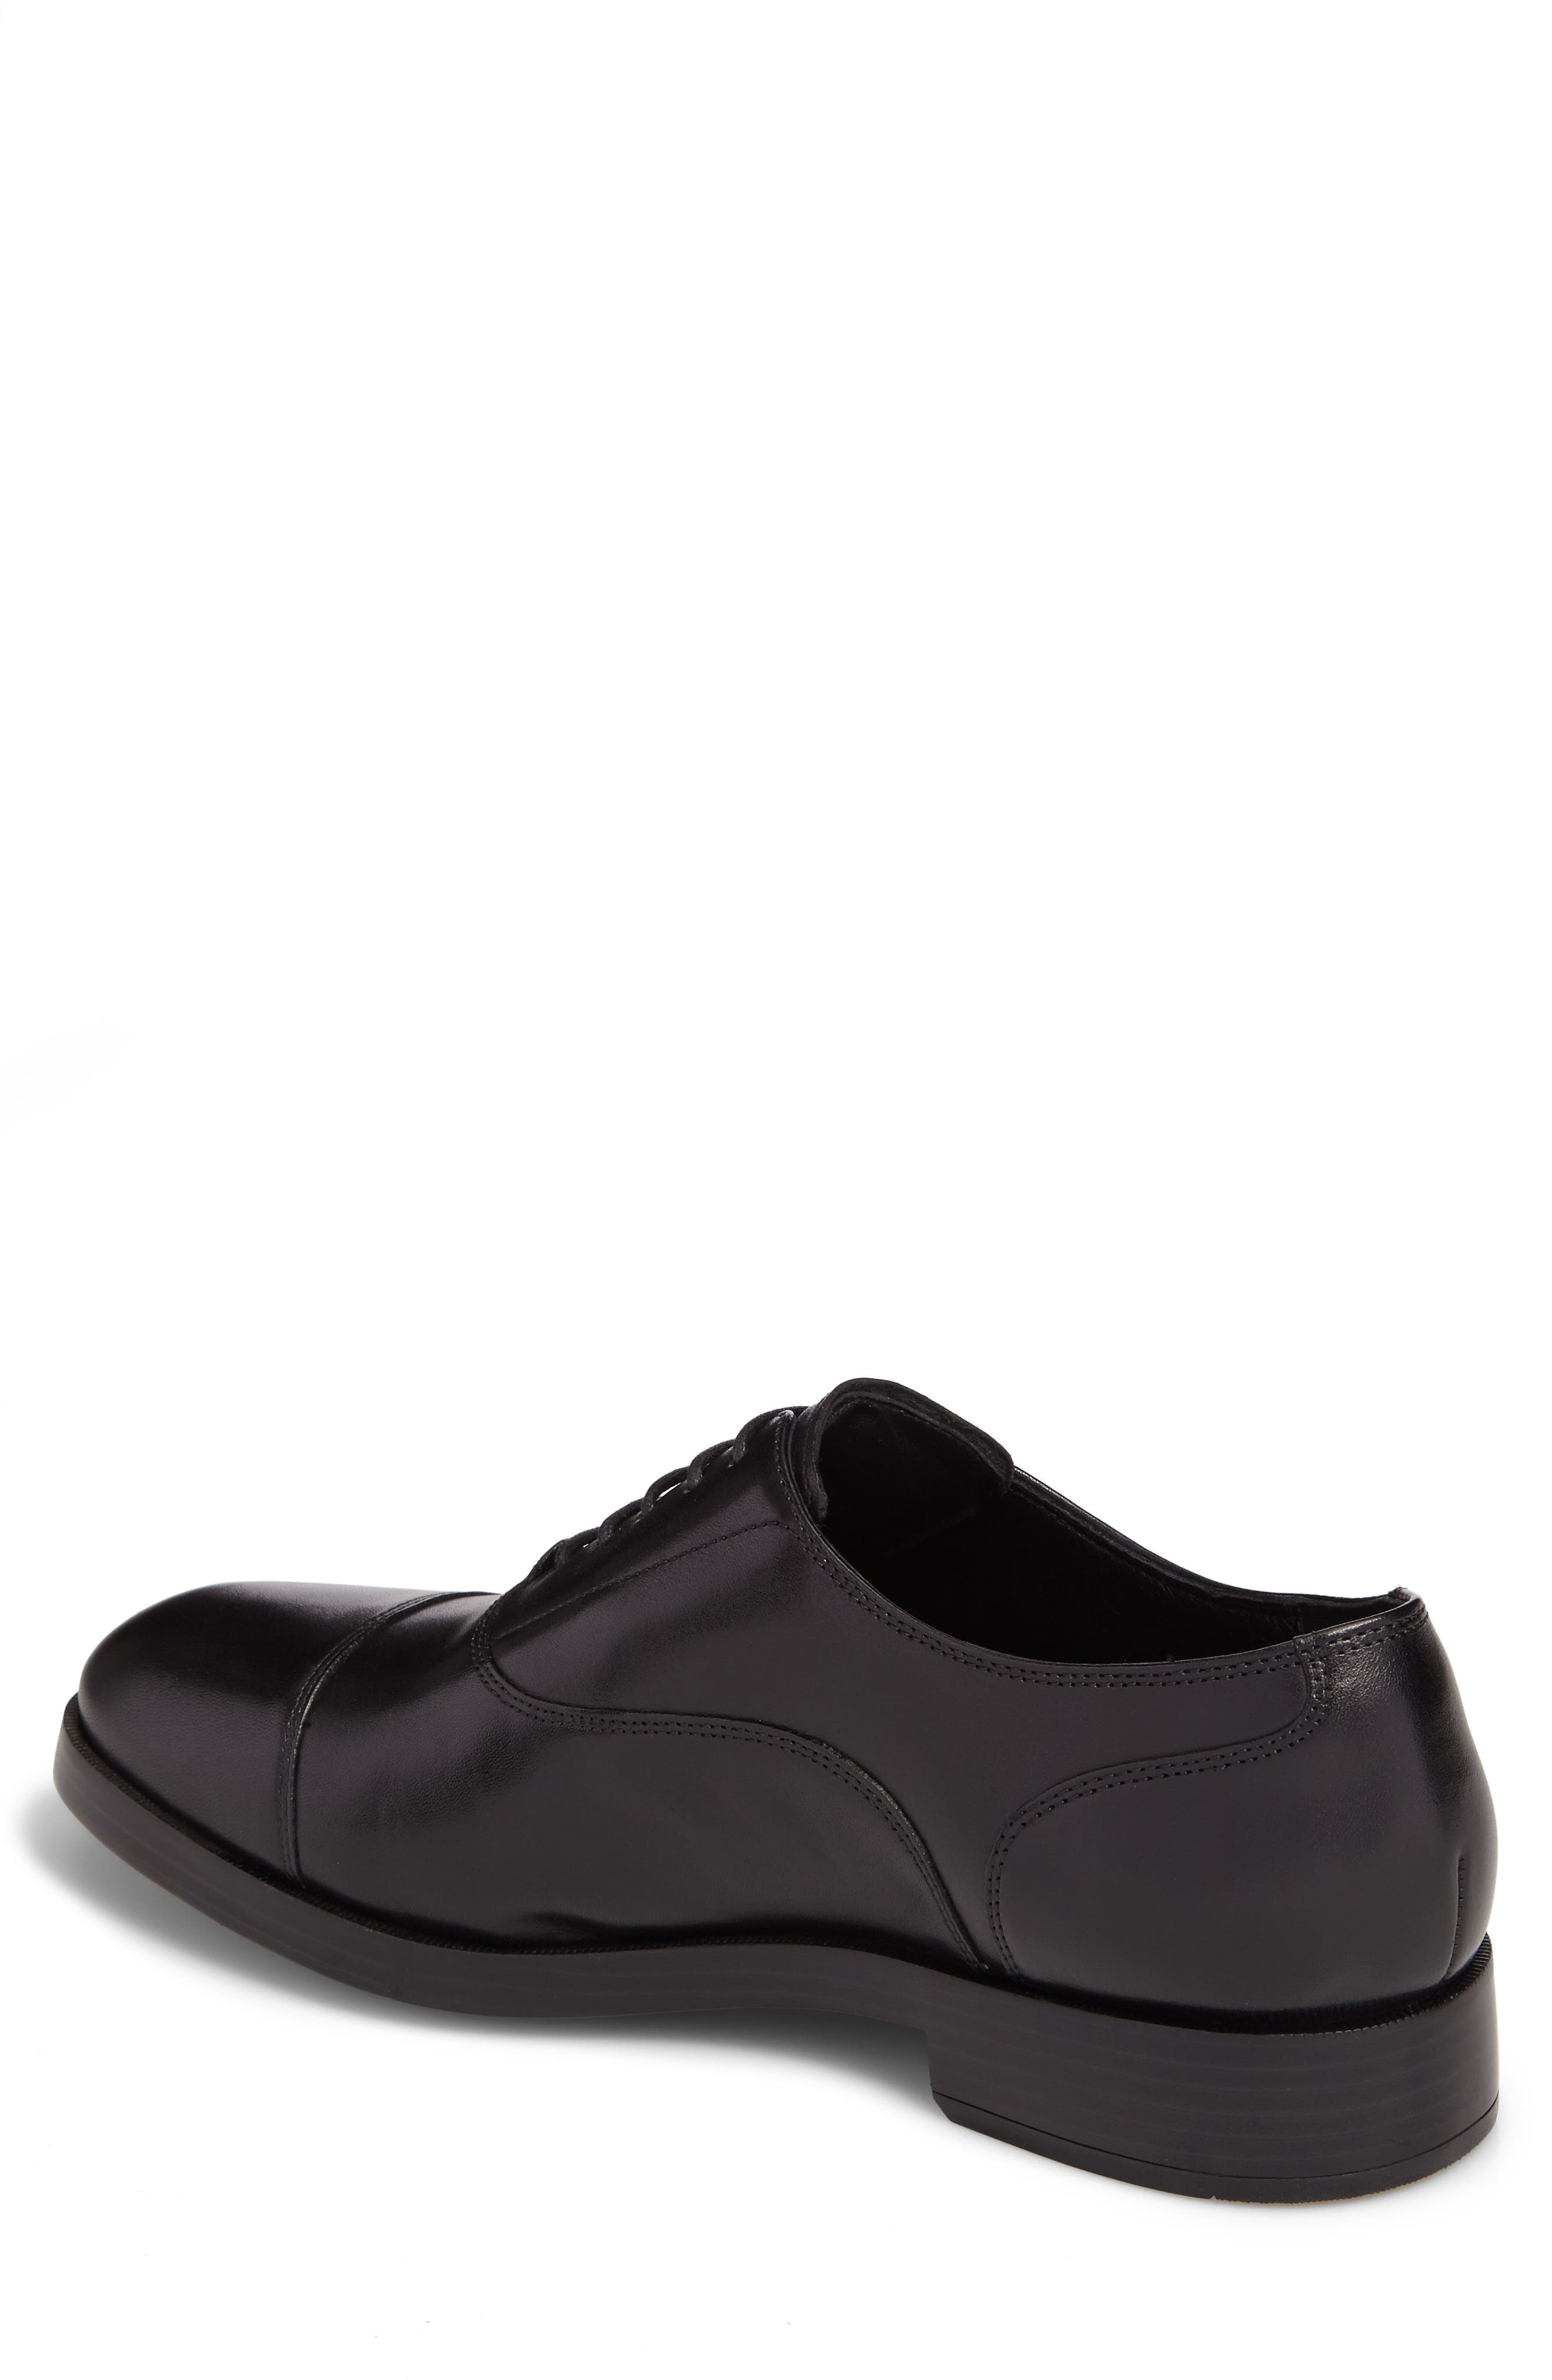 COLE HAAN, Harrison Grand Cap Toe Oxford, Alternate thumbnail 2, color, BLACK/ BLACK LEATHER